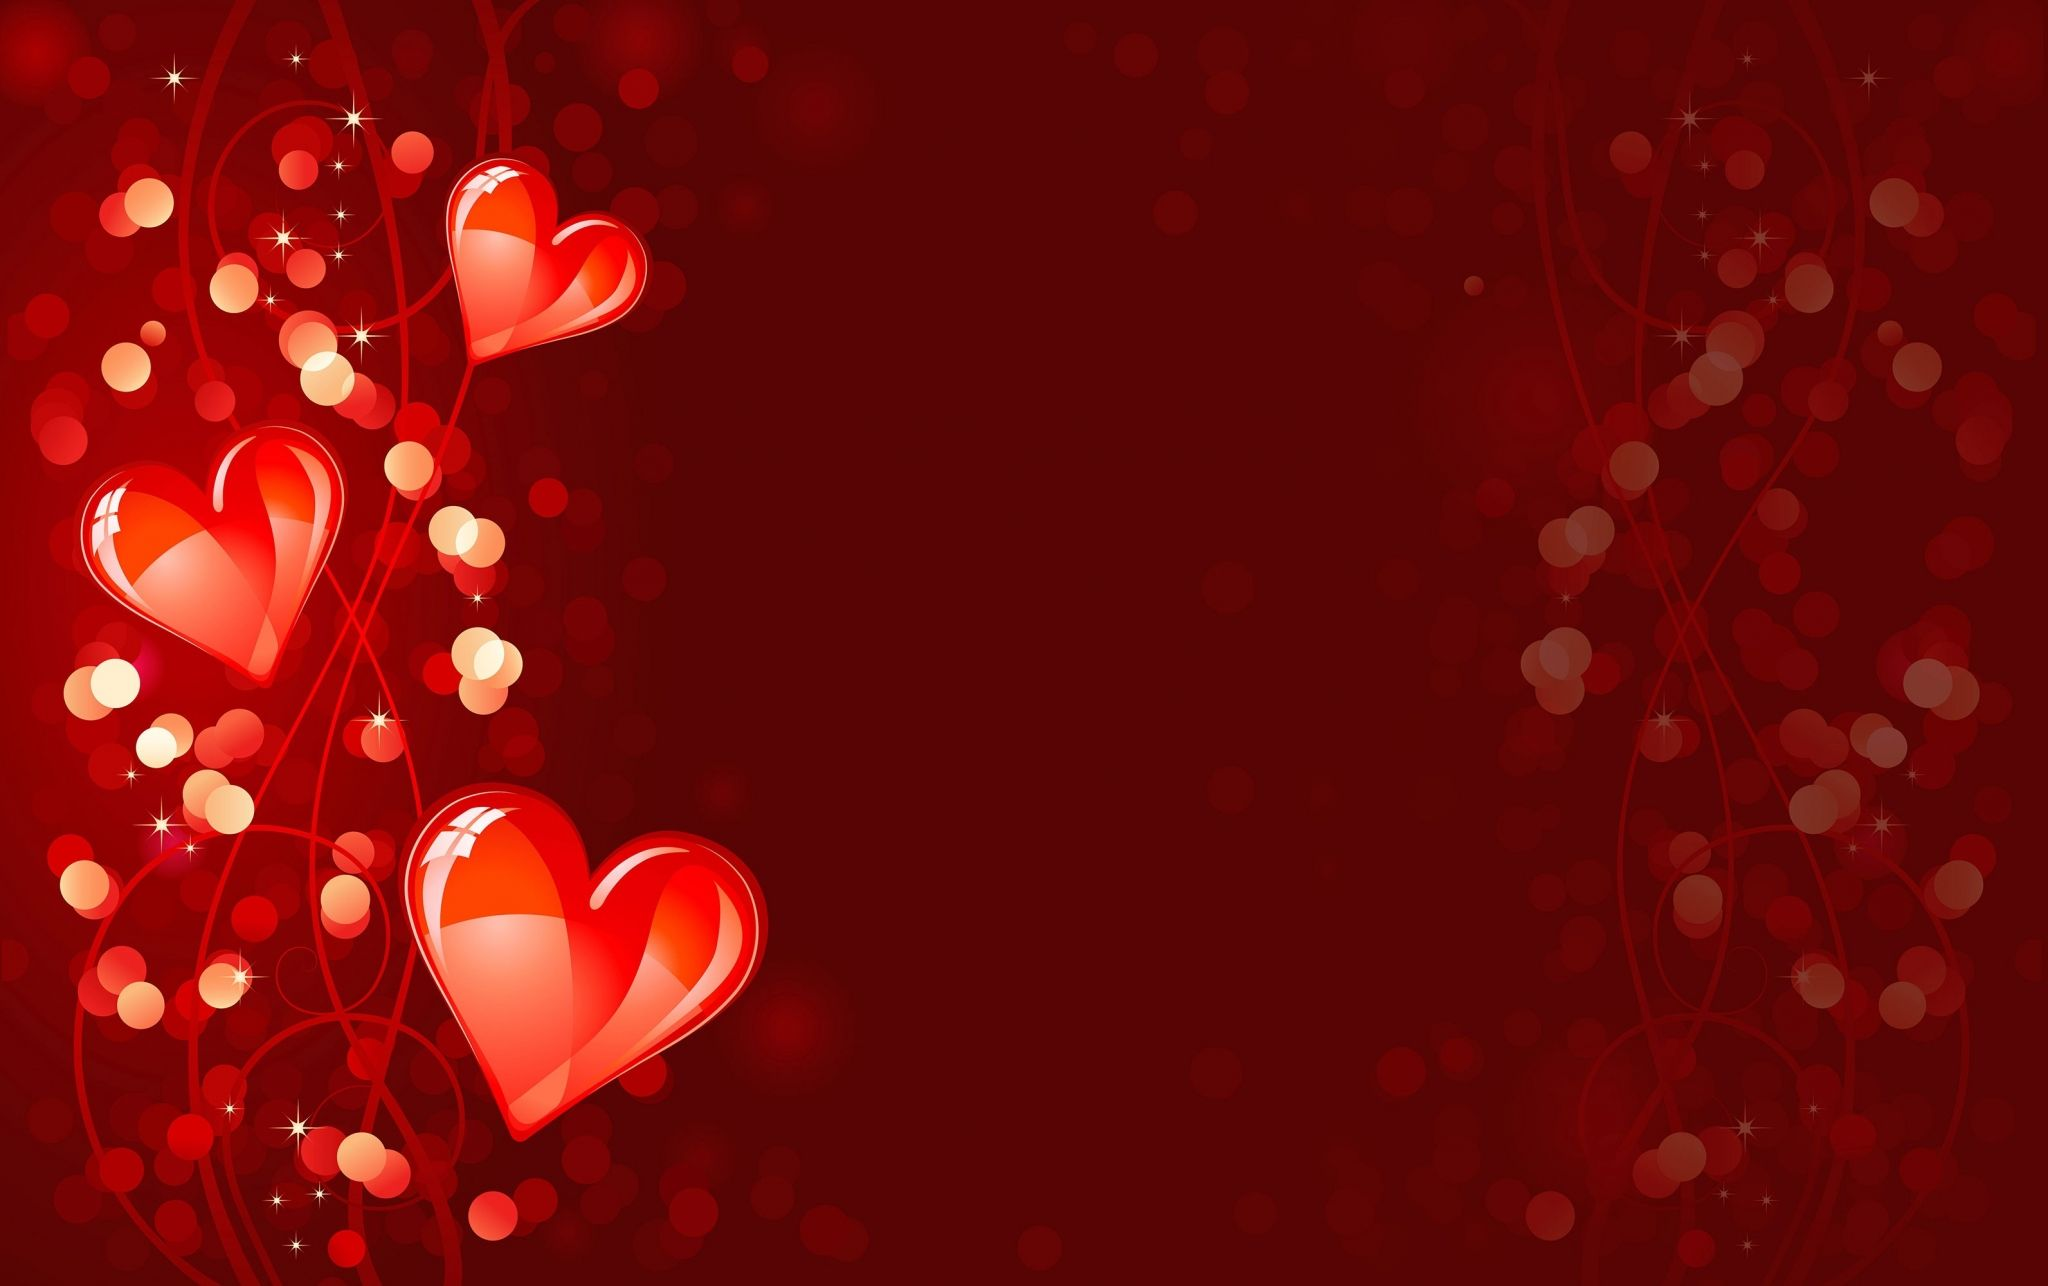 2048x1286 valentines day wallpaper pack 1080p hd